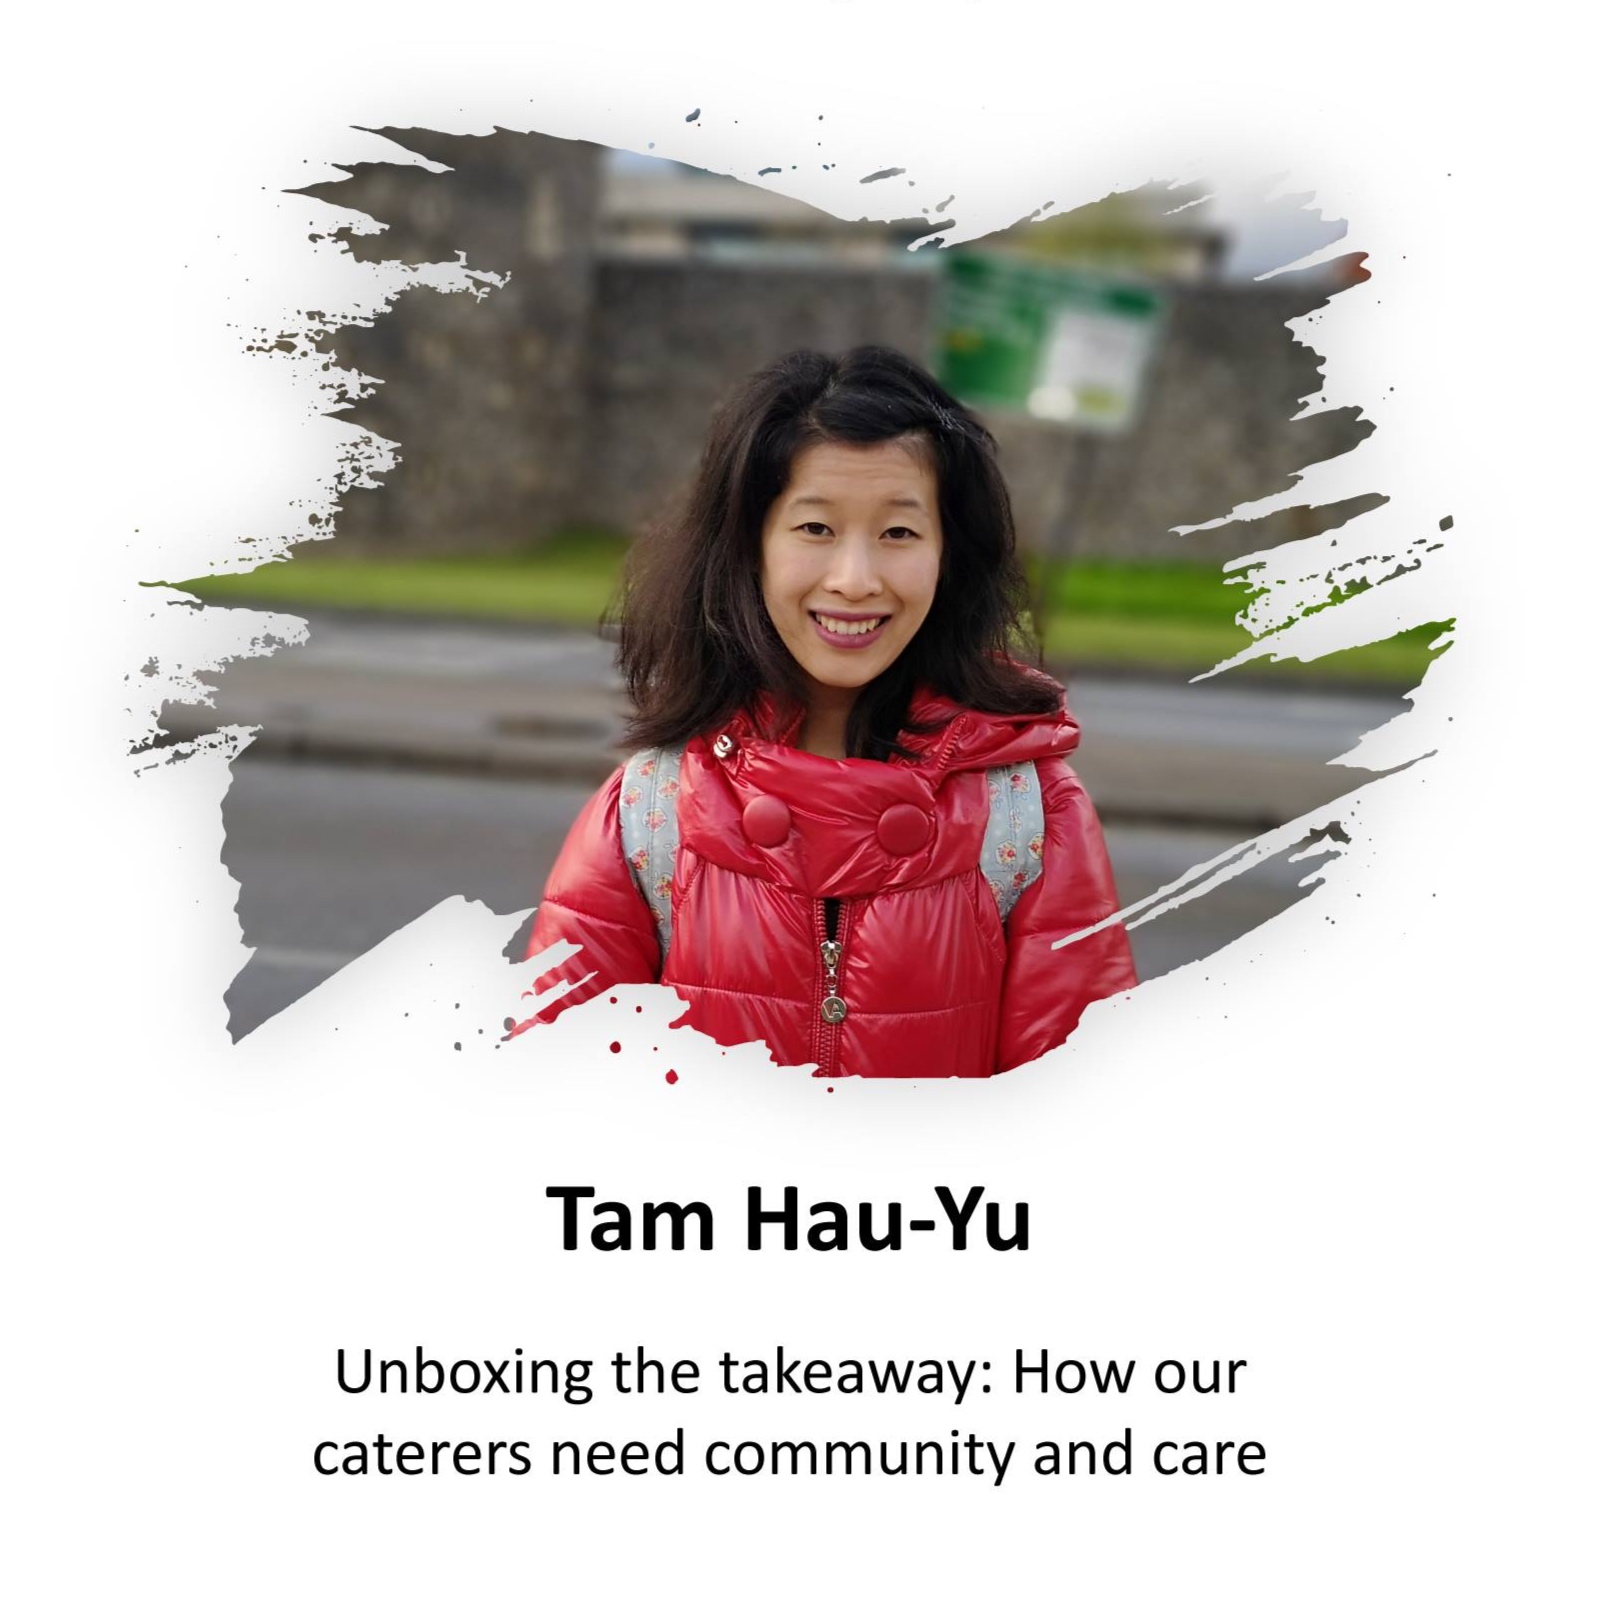 Tam Hau-Yu 譚巧瑜 (Tam being the family name) is a writer, researcher and community worker. She has been involved in small community organisations across London - doing a range of projects such as teaching healthy British Chinese cooking, and co-organising with other British East Asian youths on performances and campaigns to keep our community centres & cultural heritage pulsing. Currently she is taking a break from her Master's at SOAS, Uni of London, in order to work as Co-President Democracy & Education at the Students' Union. She is an island Chinese - Hong Kongnese and Malaysian heritage, UK-born - takeaway kid, who above all digs books and theatre.